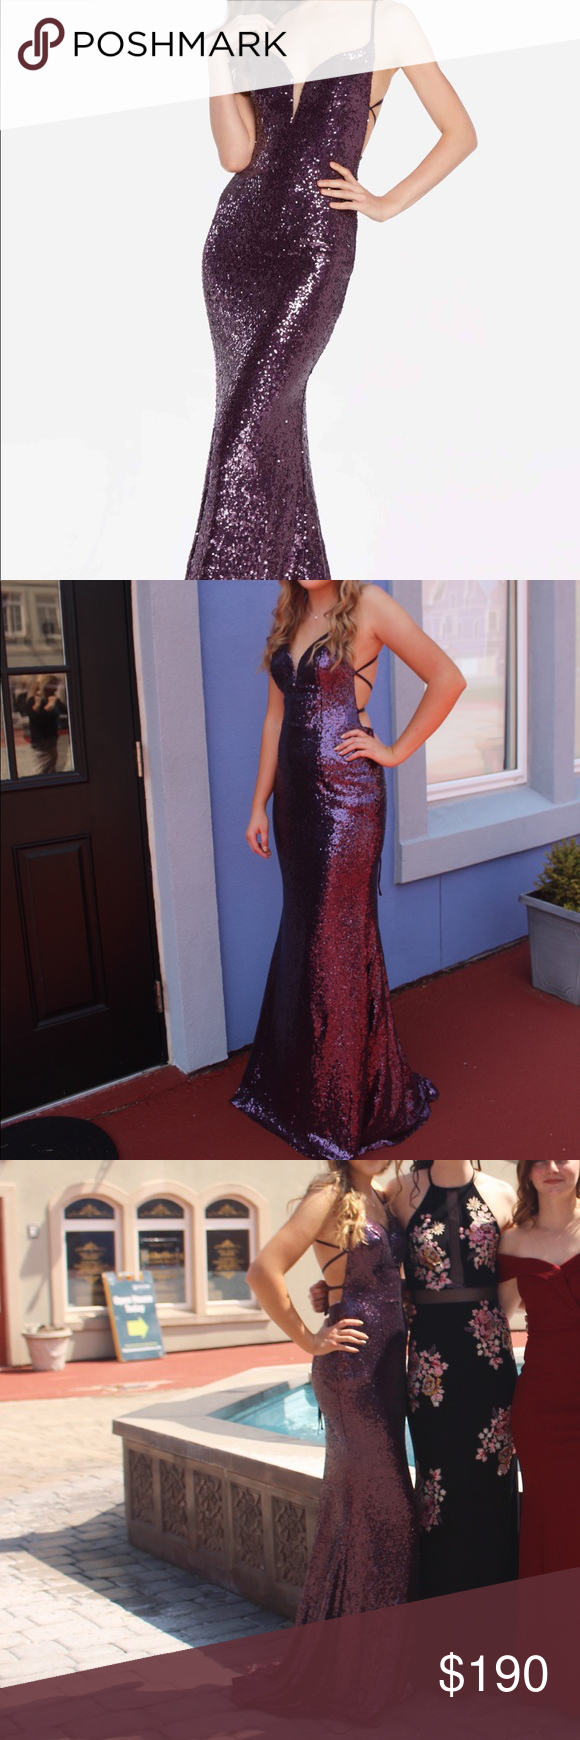 "7ab80264 Alyce 60032 sequin prom dress in color ""eggplant"" Bought new at a boutique  for $255 (with tax) worn once for prom I am open to offers, I need to sell  it in ..."